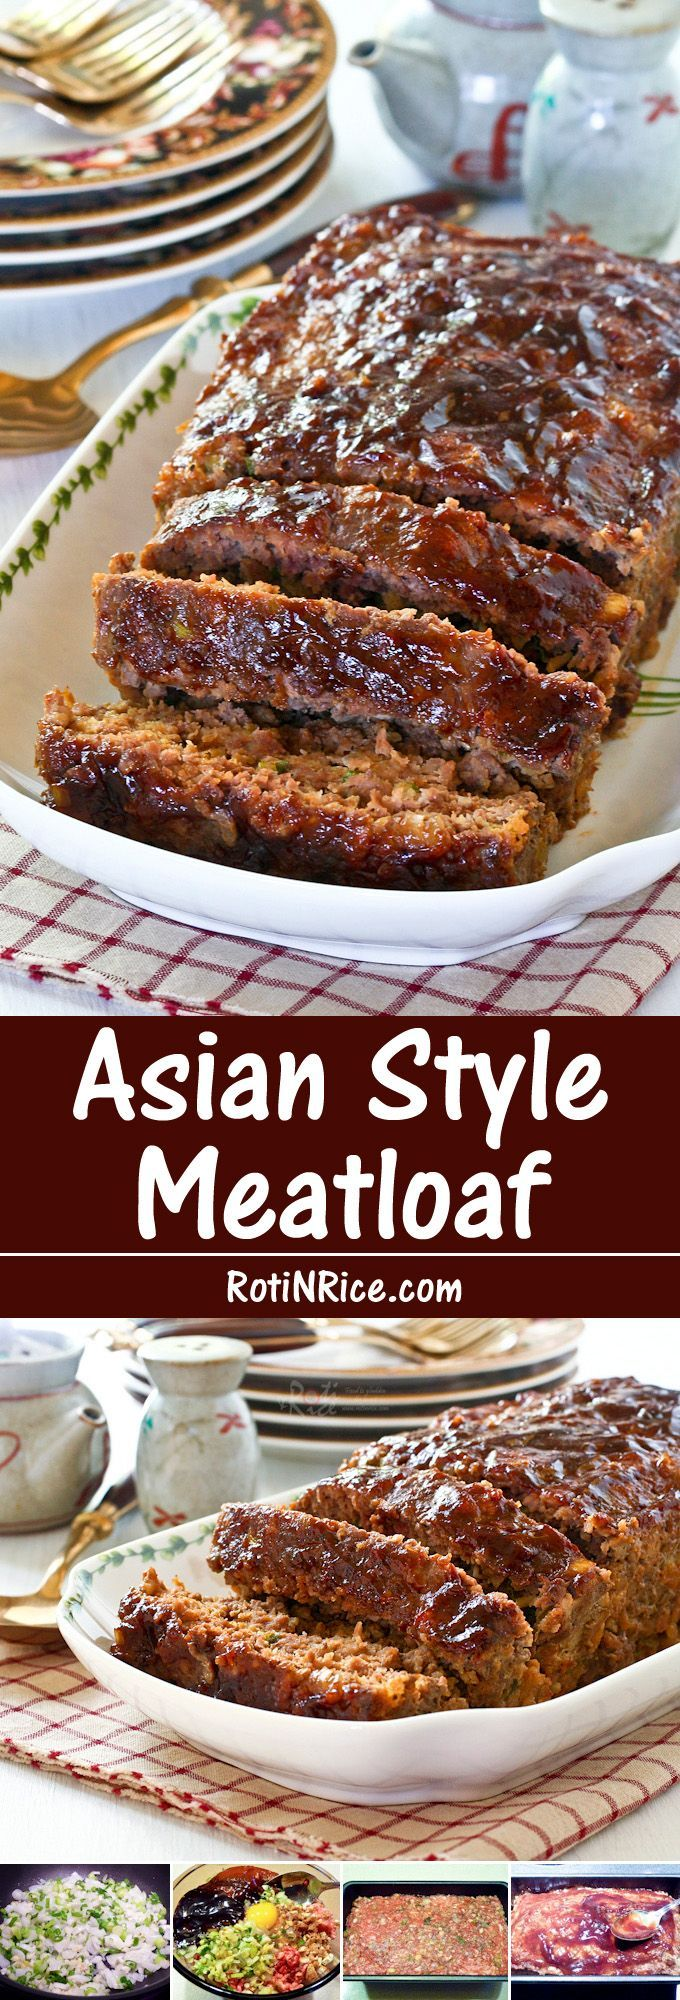 Moist and flavorful Asian Style Meatloaf flavored with hoisin and soy sauce. Delicious served with rice for a truly Asian taste. | Food to gladden the heart at http://RotiNRice.com